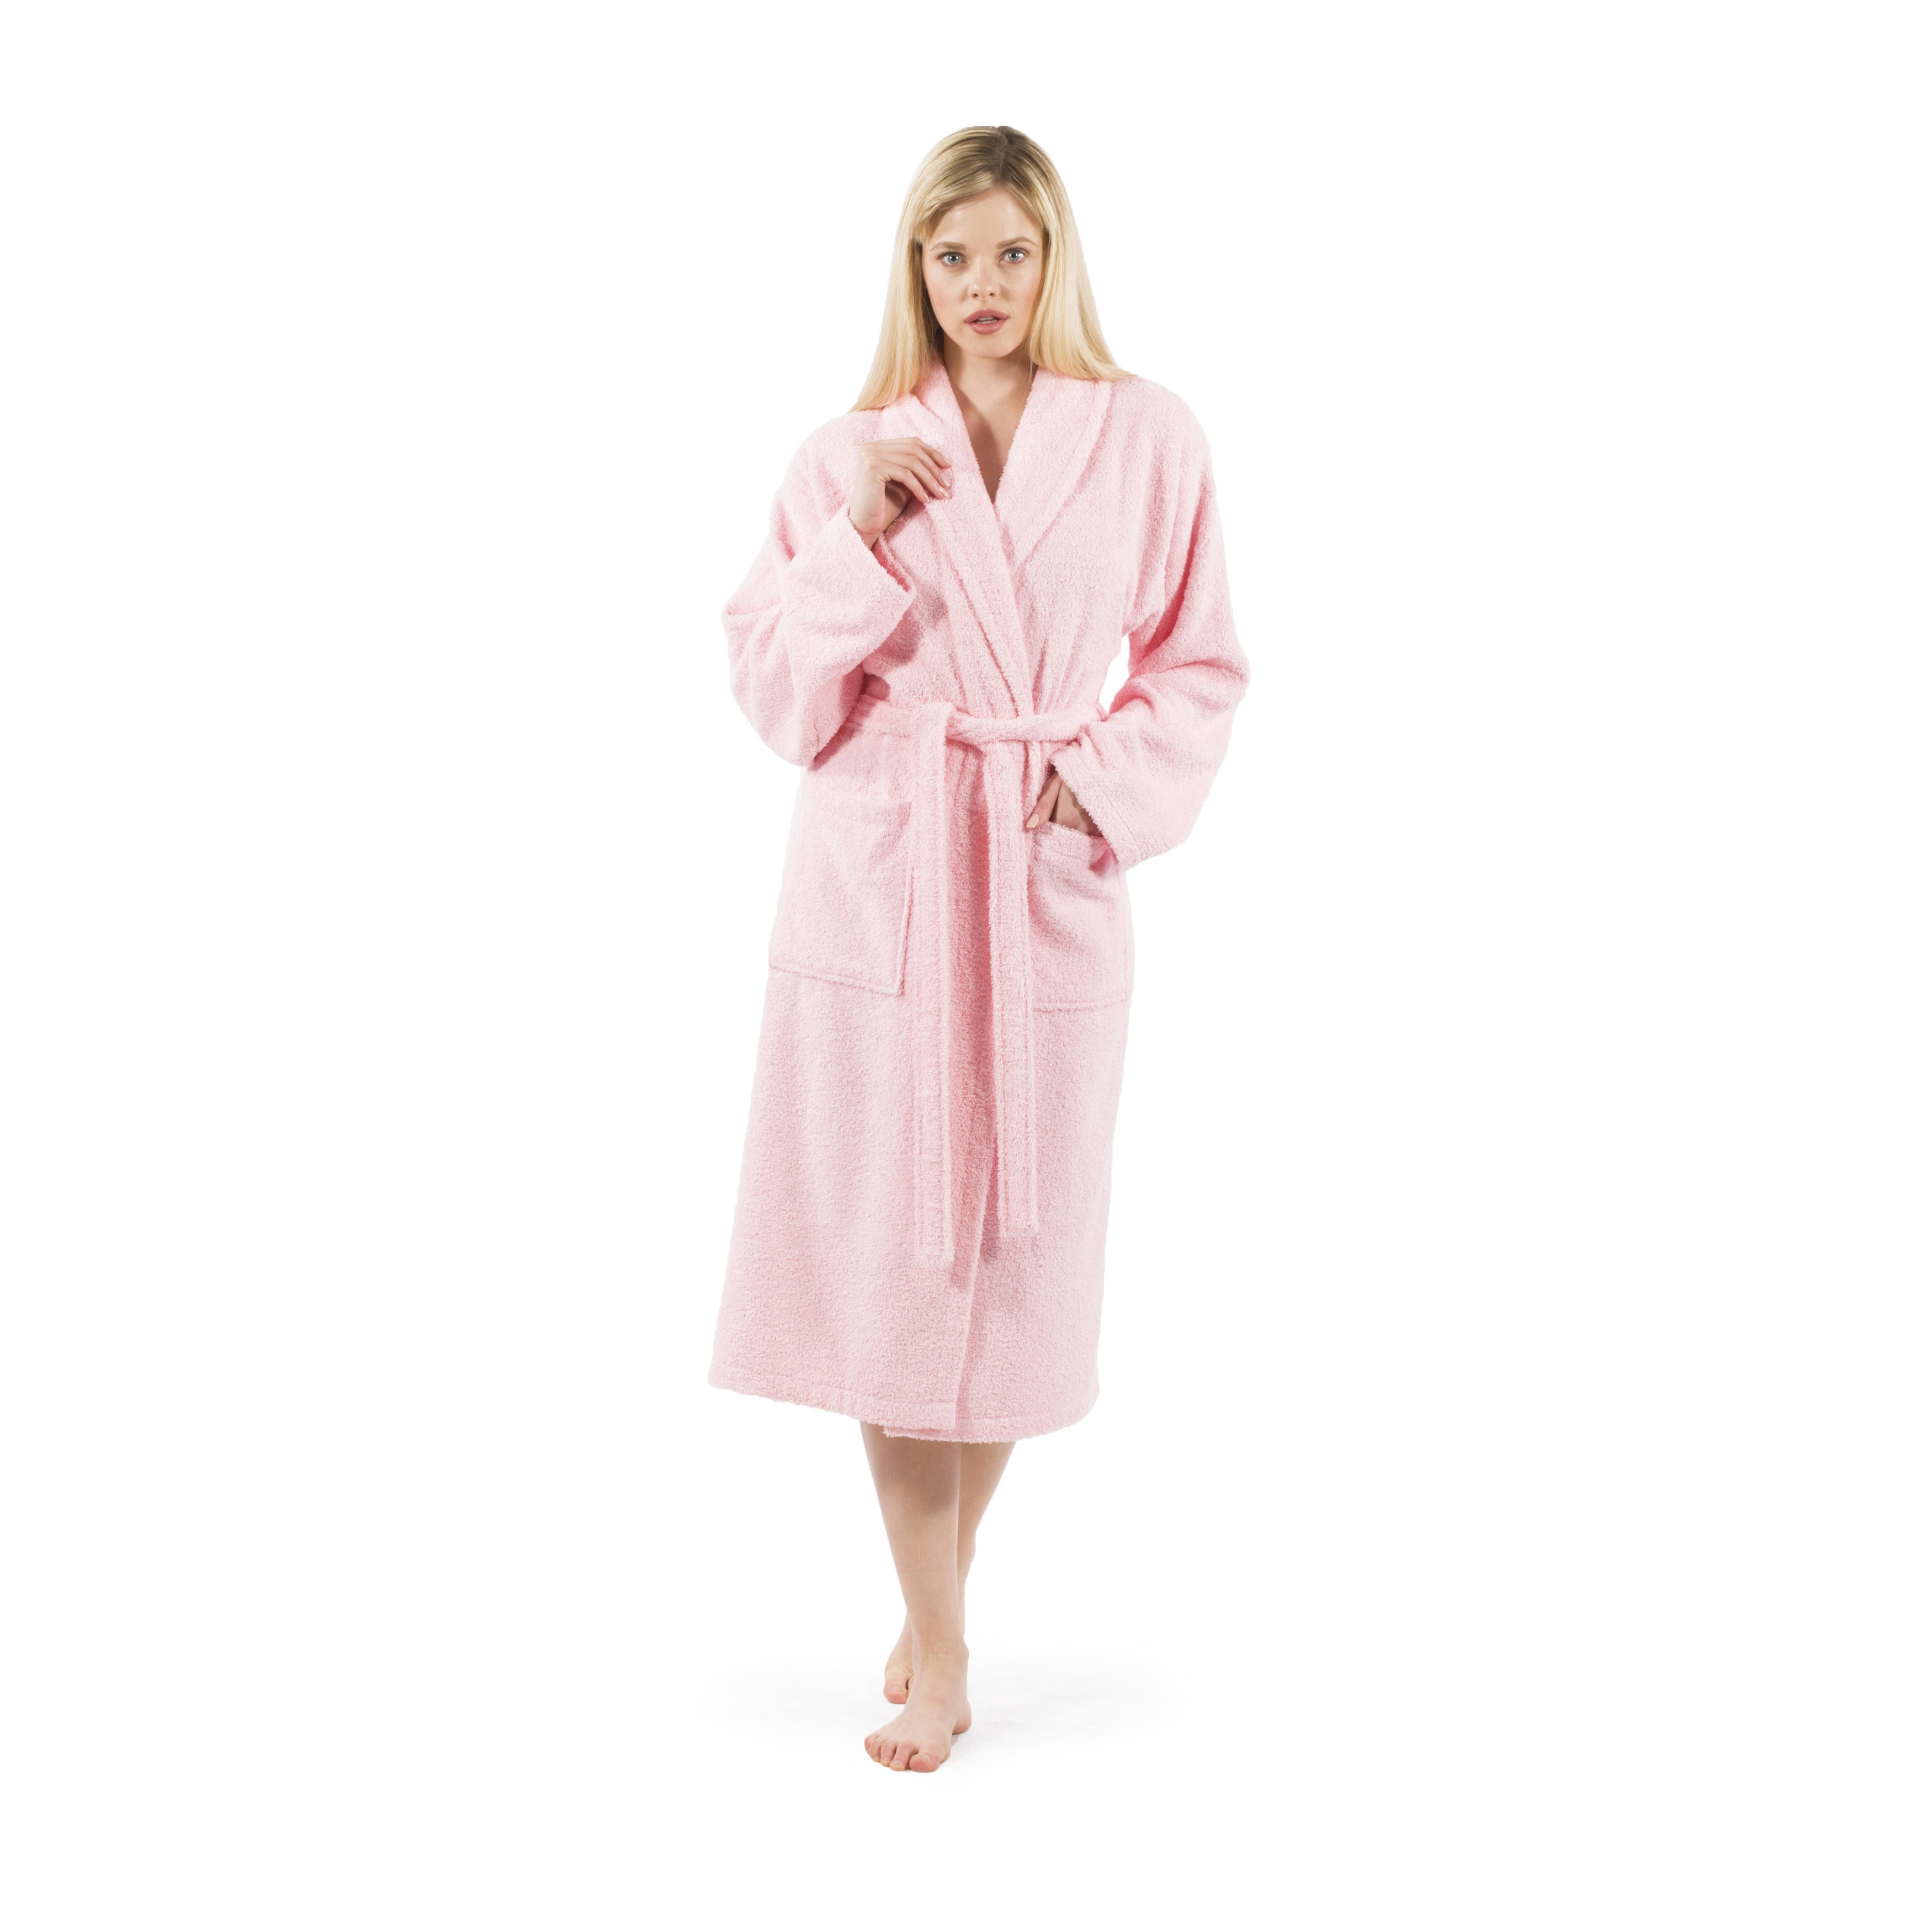 search for newest hot-selling authentic competitive price Authentic Hotel Spa Unisex Turkish Cotton Terry Cloth Bath Robe